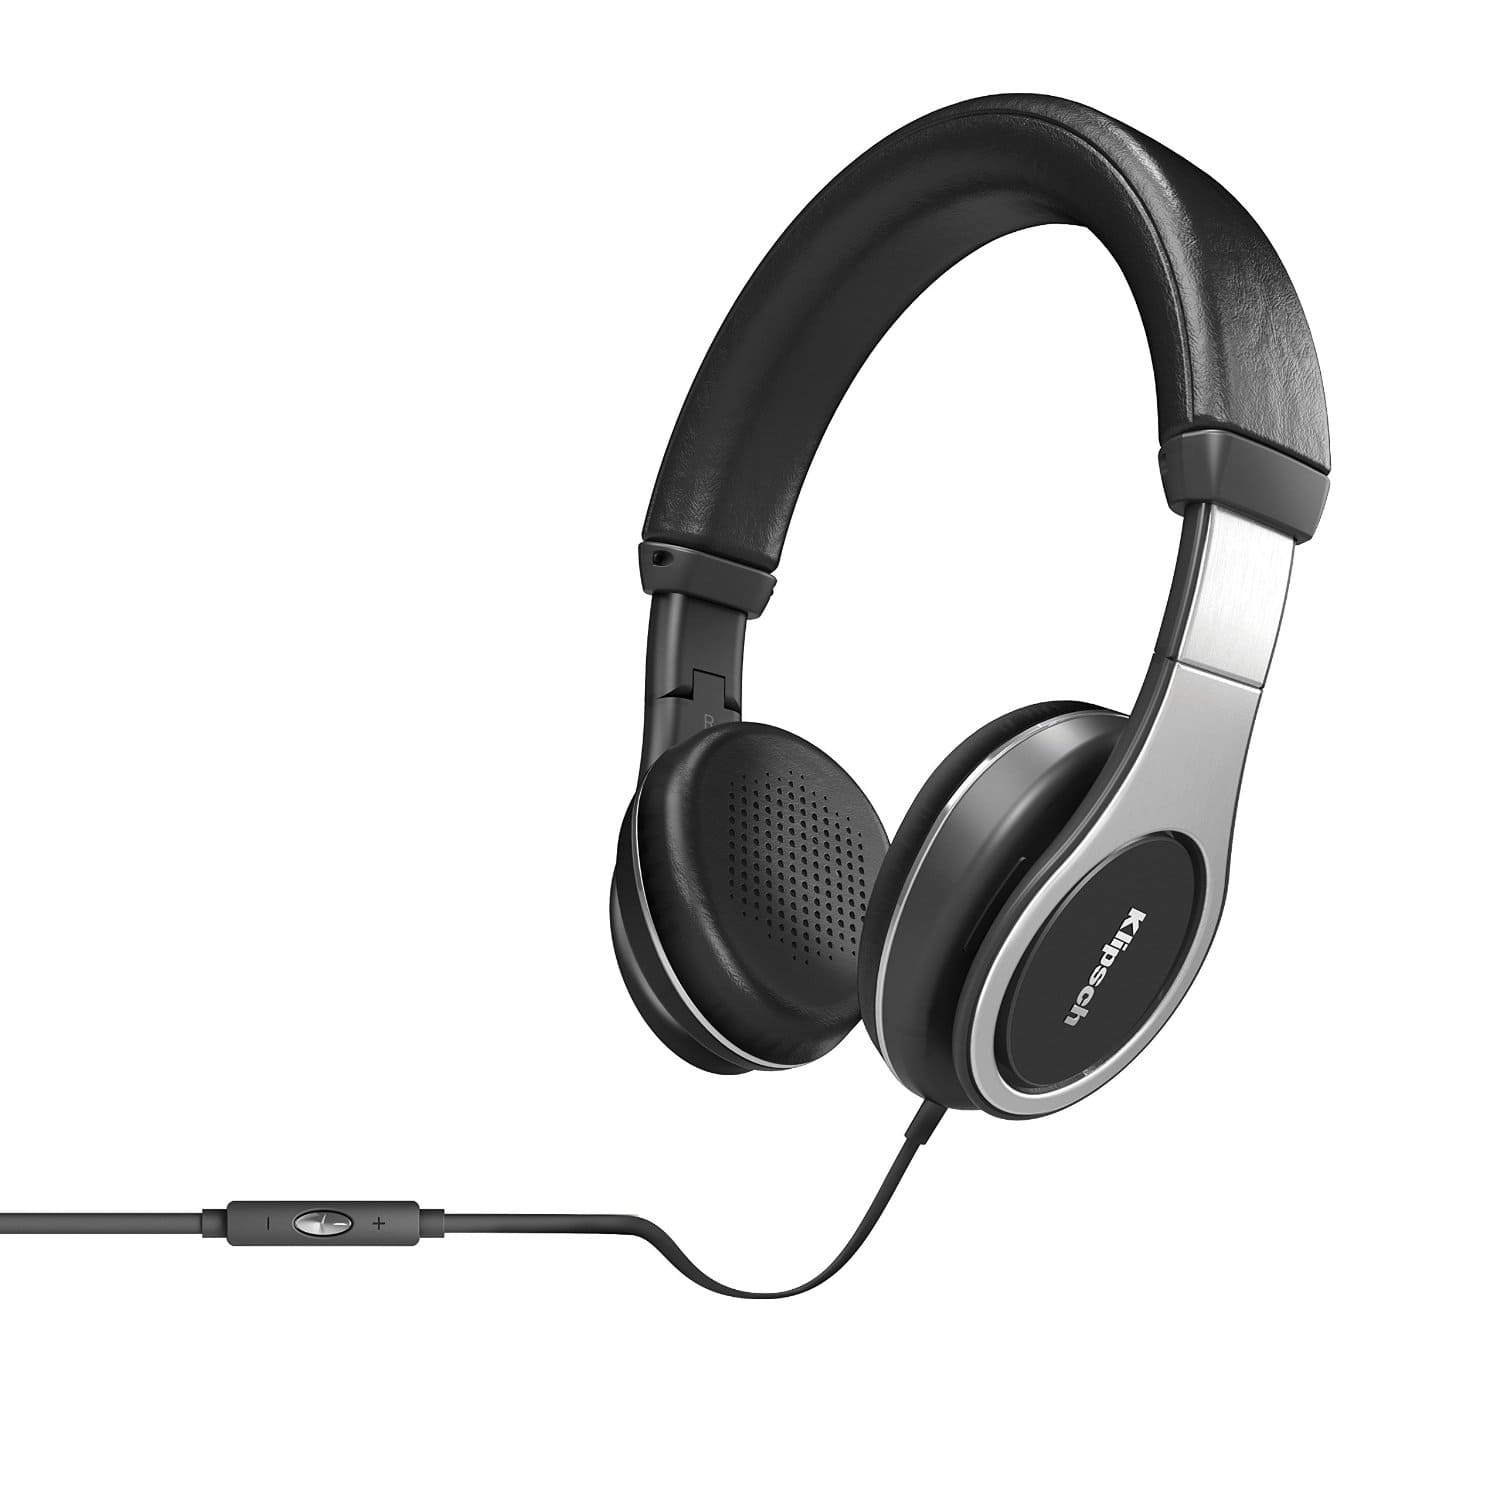 Klipsch Reference On-Ear Premium Headphones for $49.00 AR, JBL Synchros S300 On-Ear Headphones with iOS Remote + Mic for $29.99 AR + Free Shipping @ Newegg.com